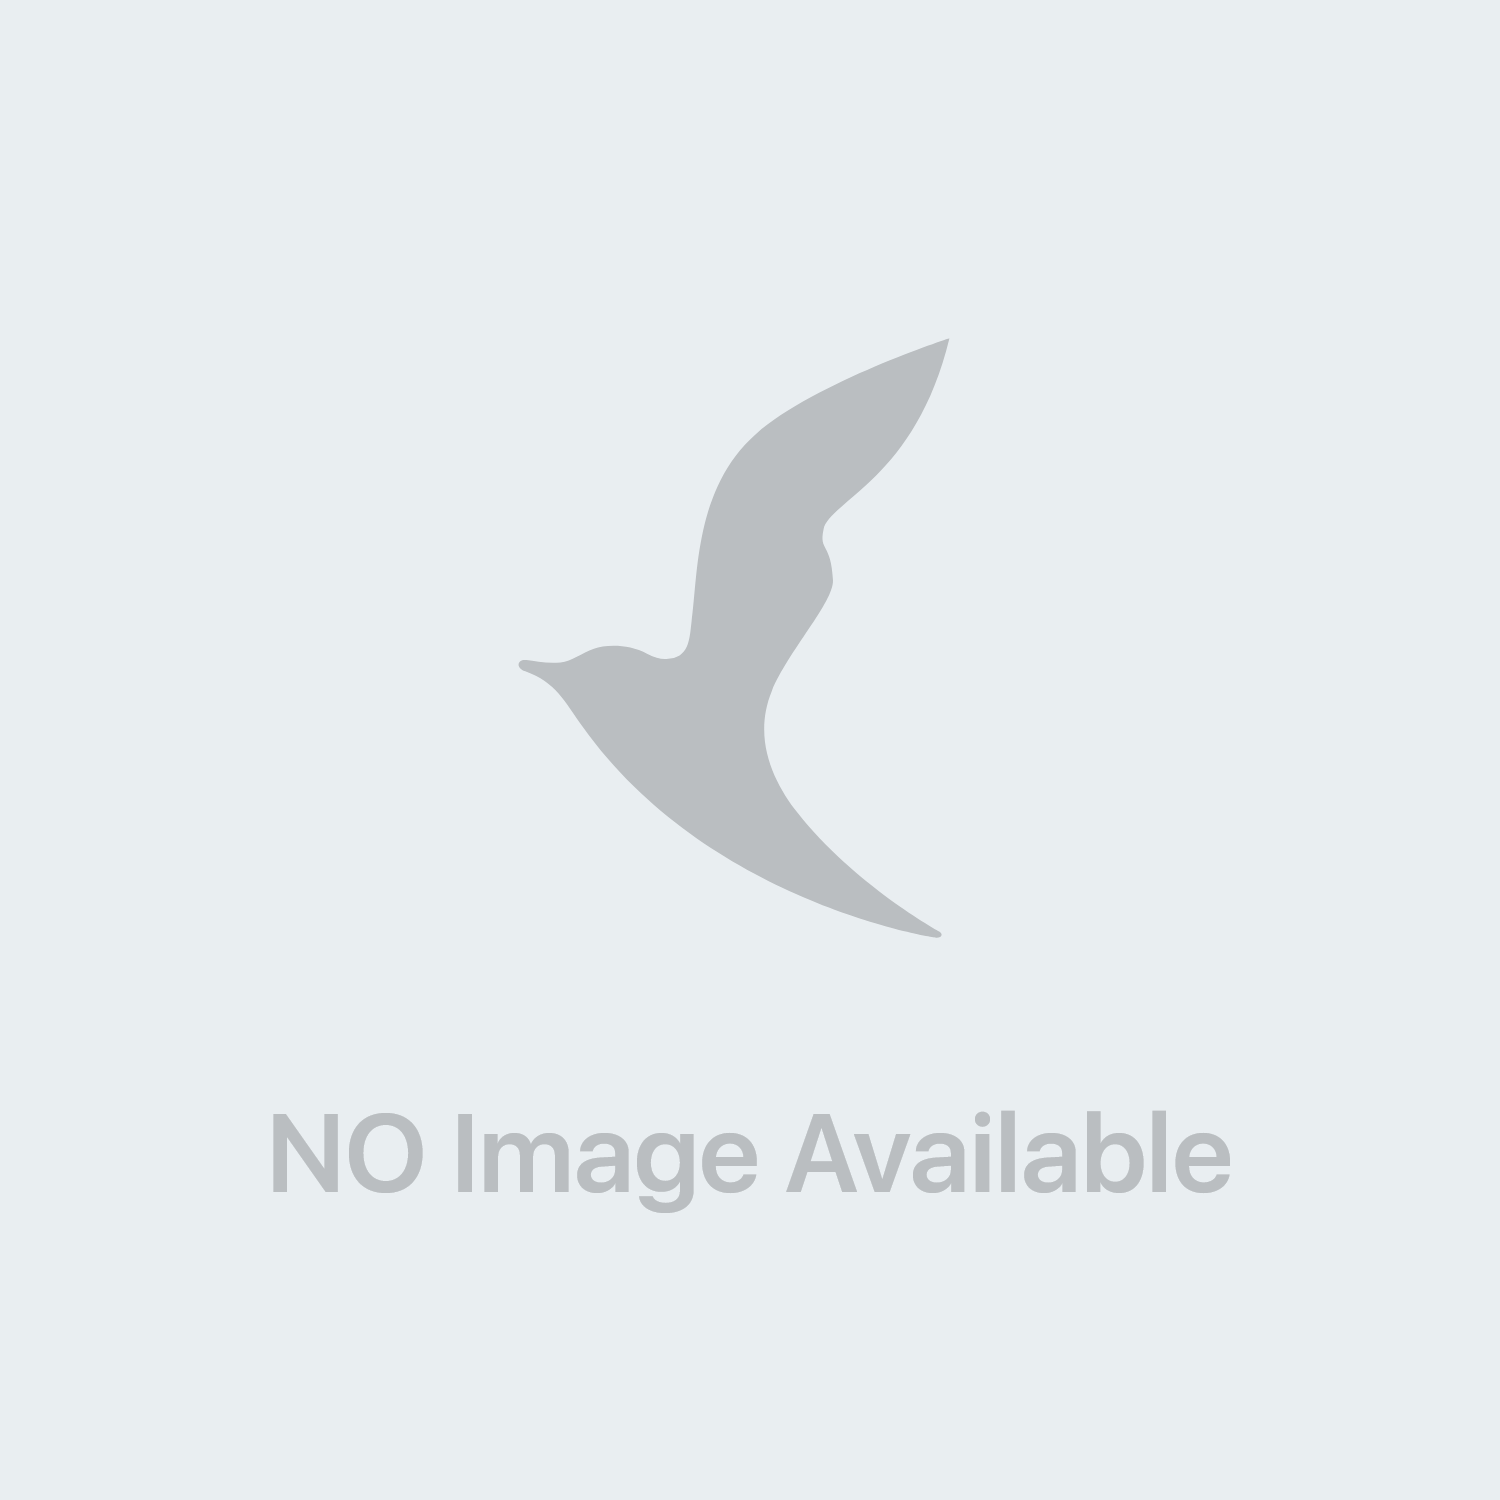 Influvit 16 Compresse 150+300+150 mg